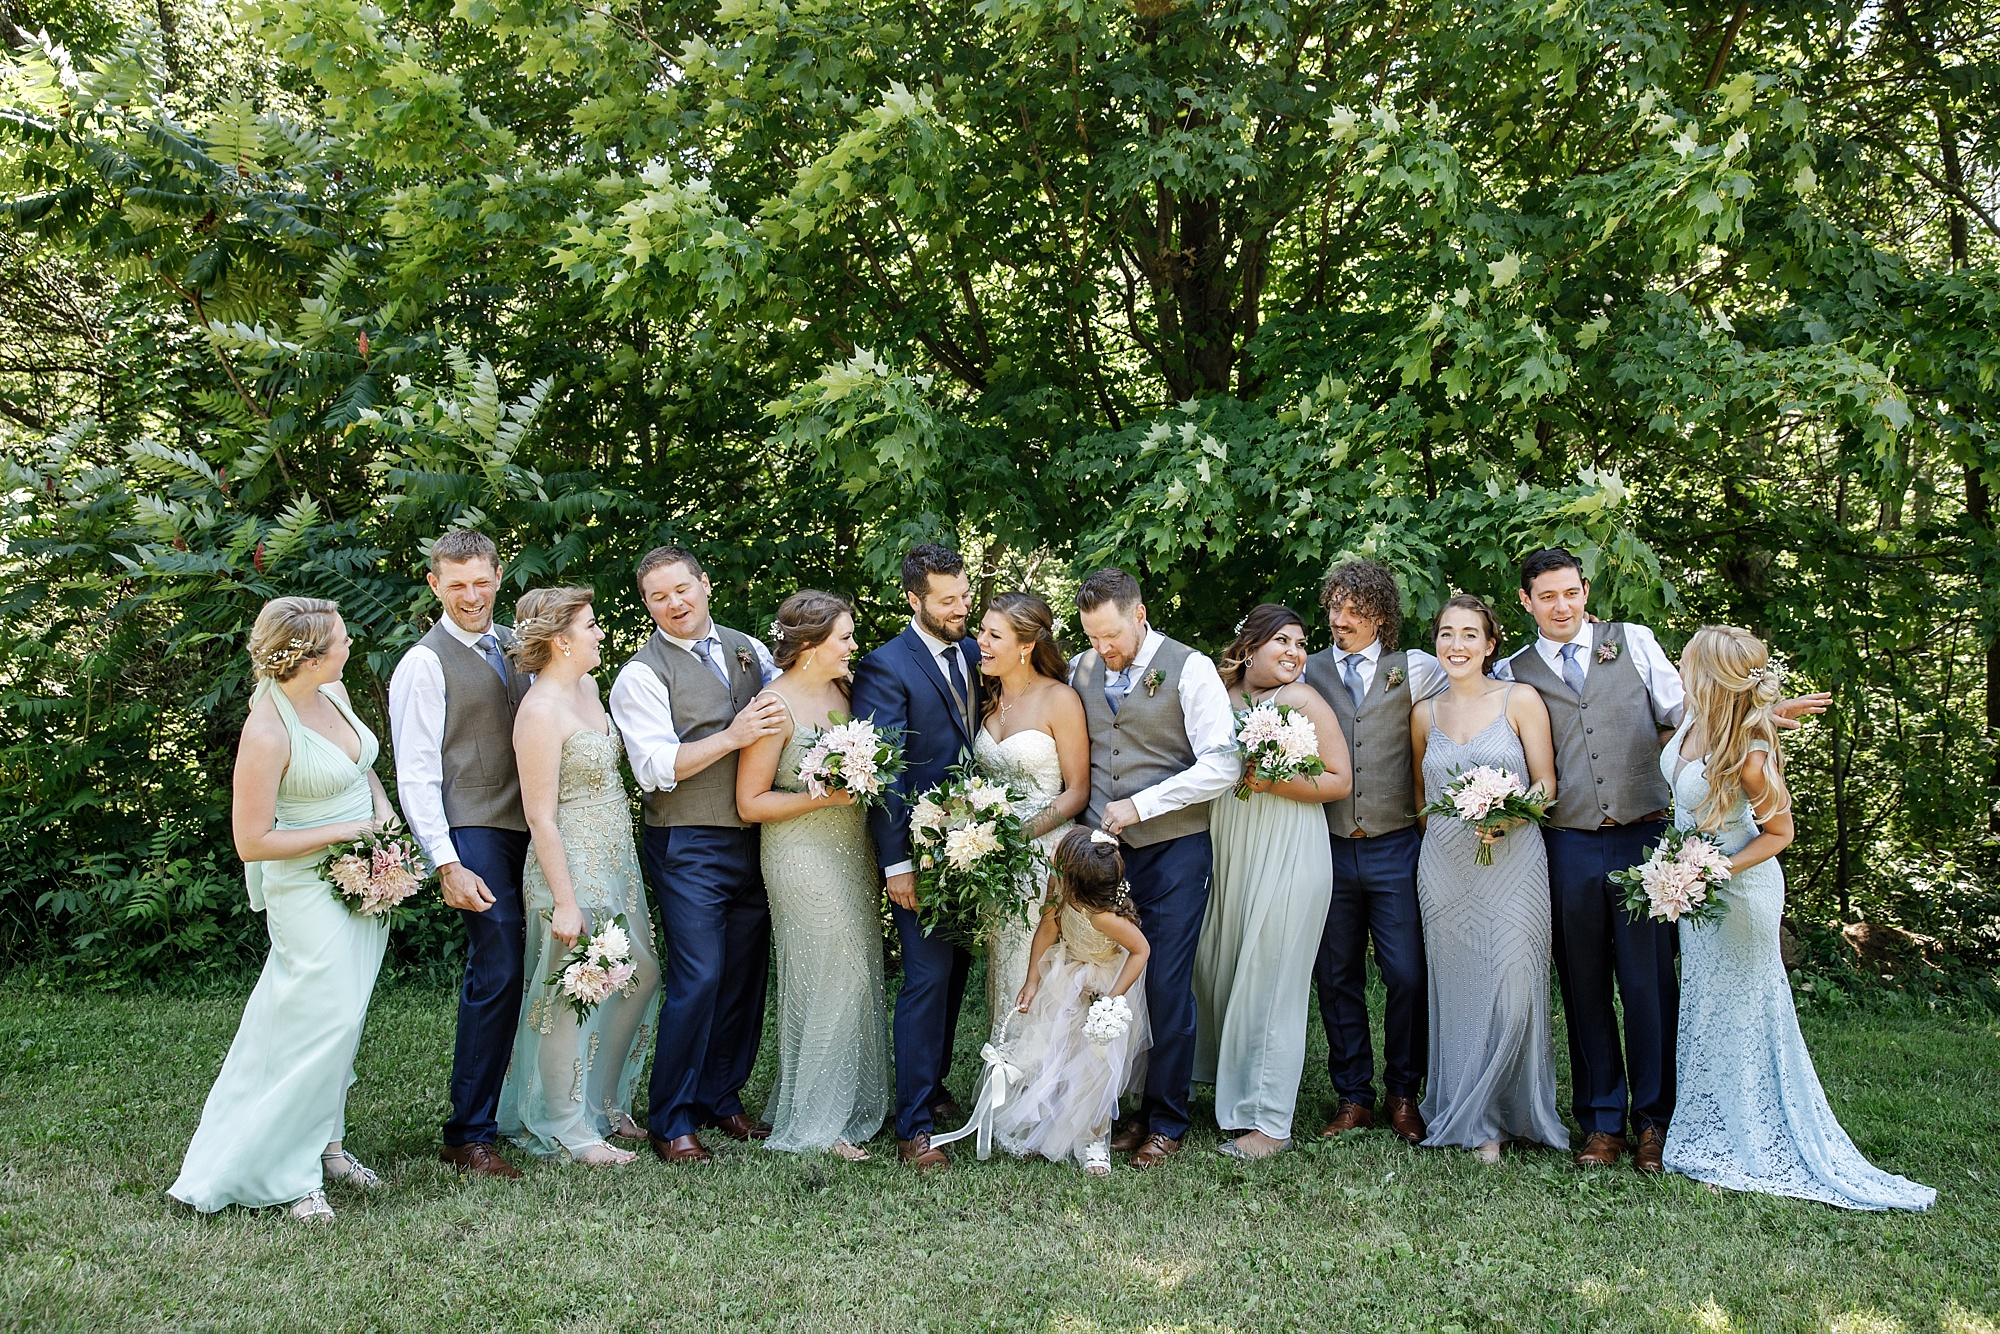 niagaraonthelake-backyardwedding_0018.jpg